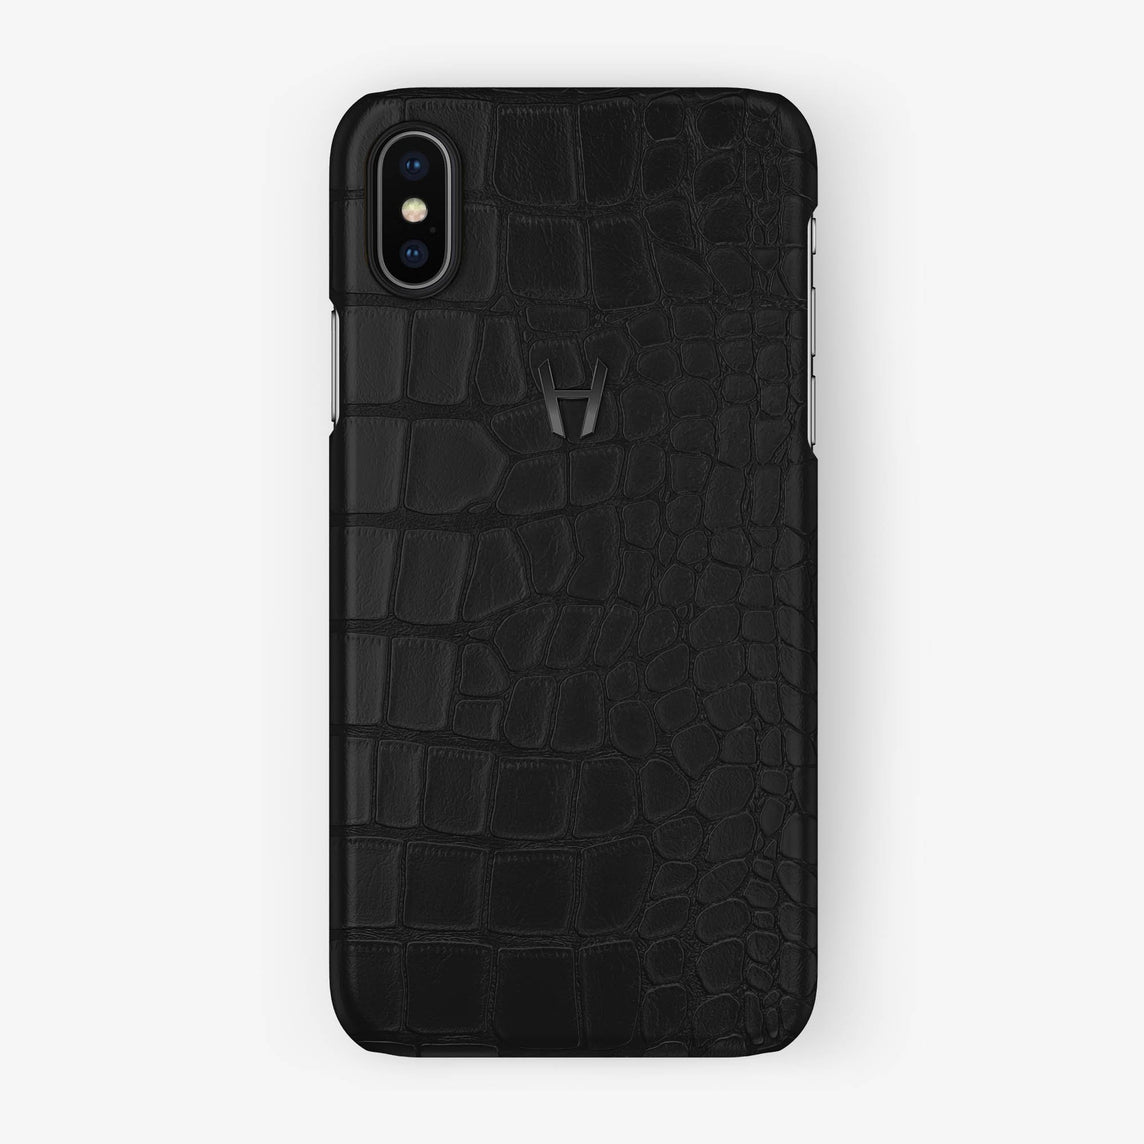 Alligator Case iPhone X/Xs | Phantom Black - Black without-personalization